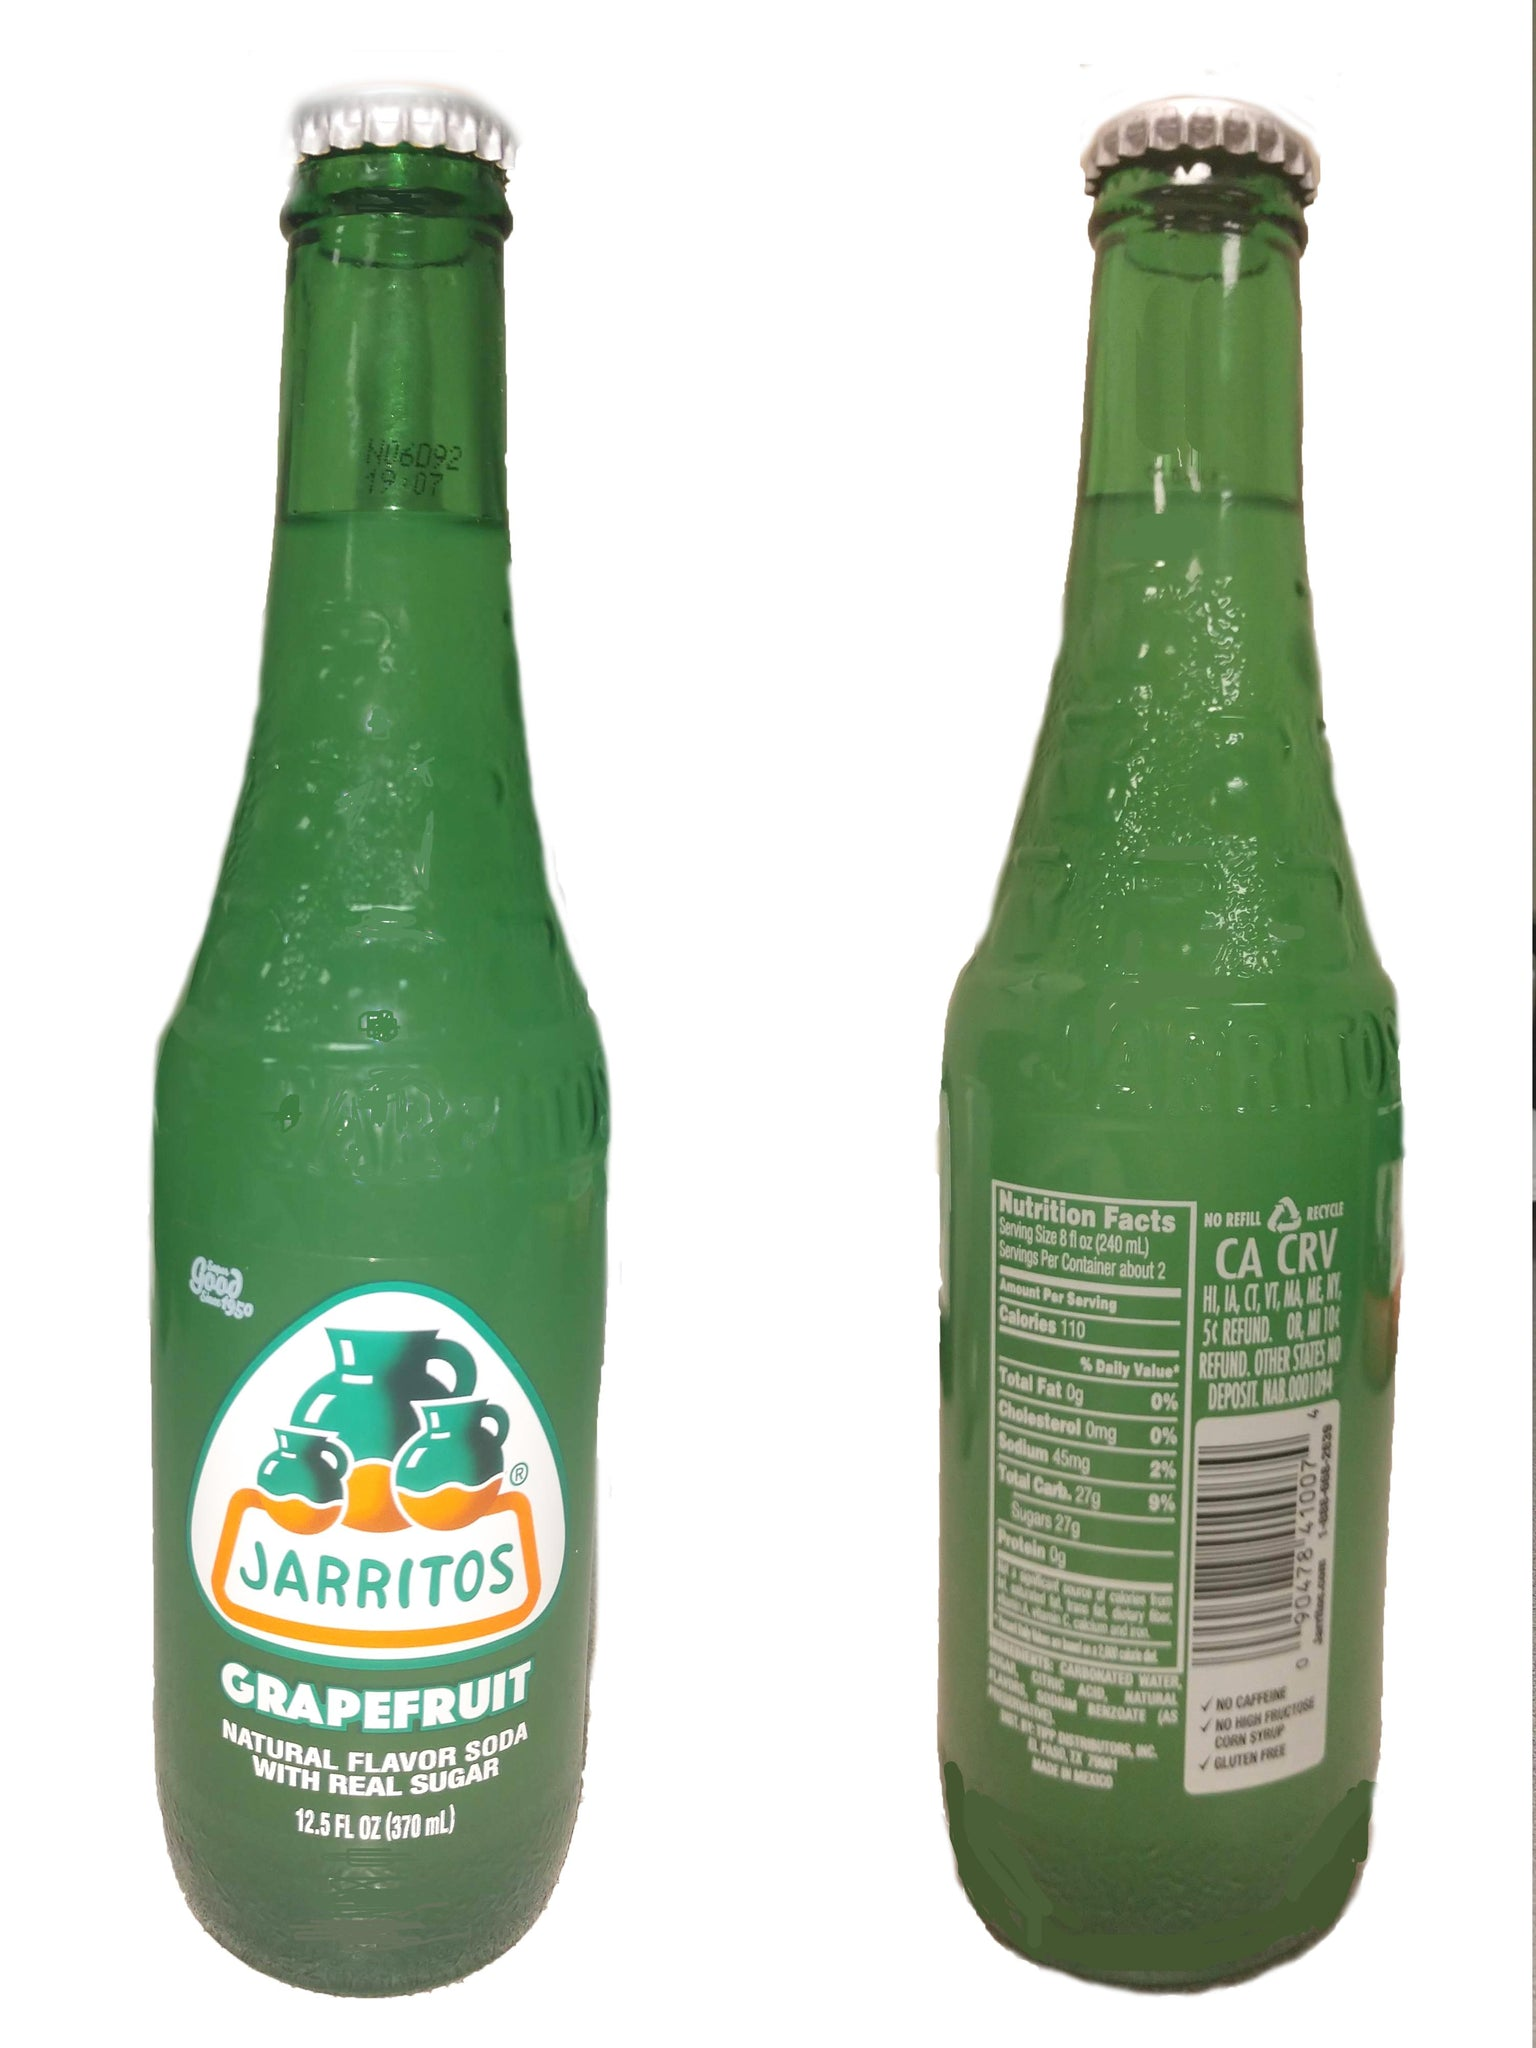 Jarritos Grapefruit Soda, 12.5 Oz (Pack of 24)